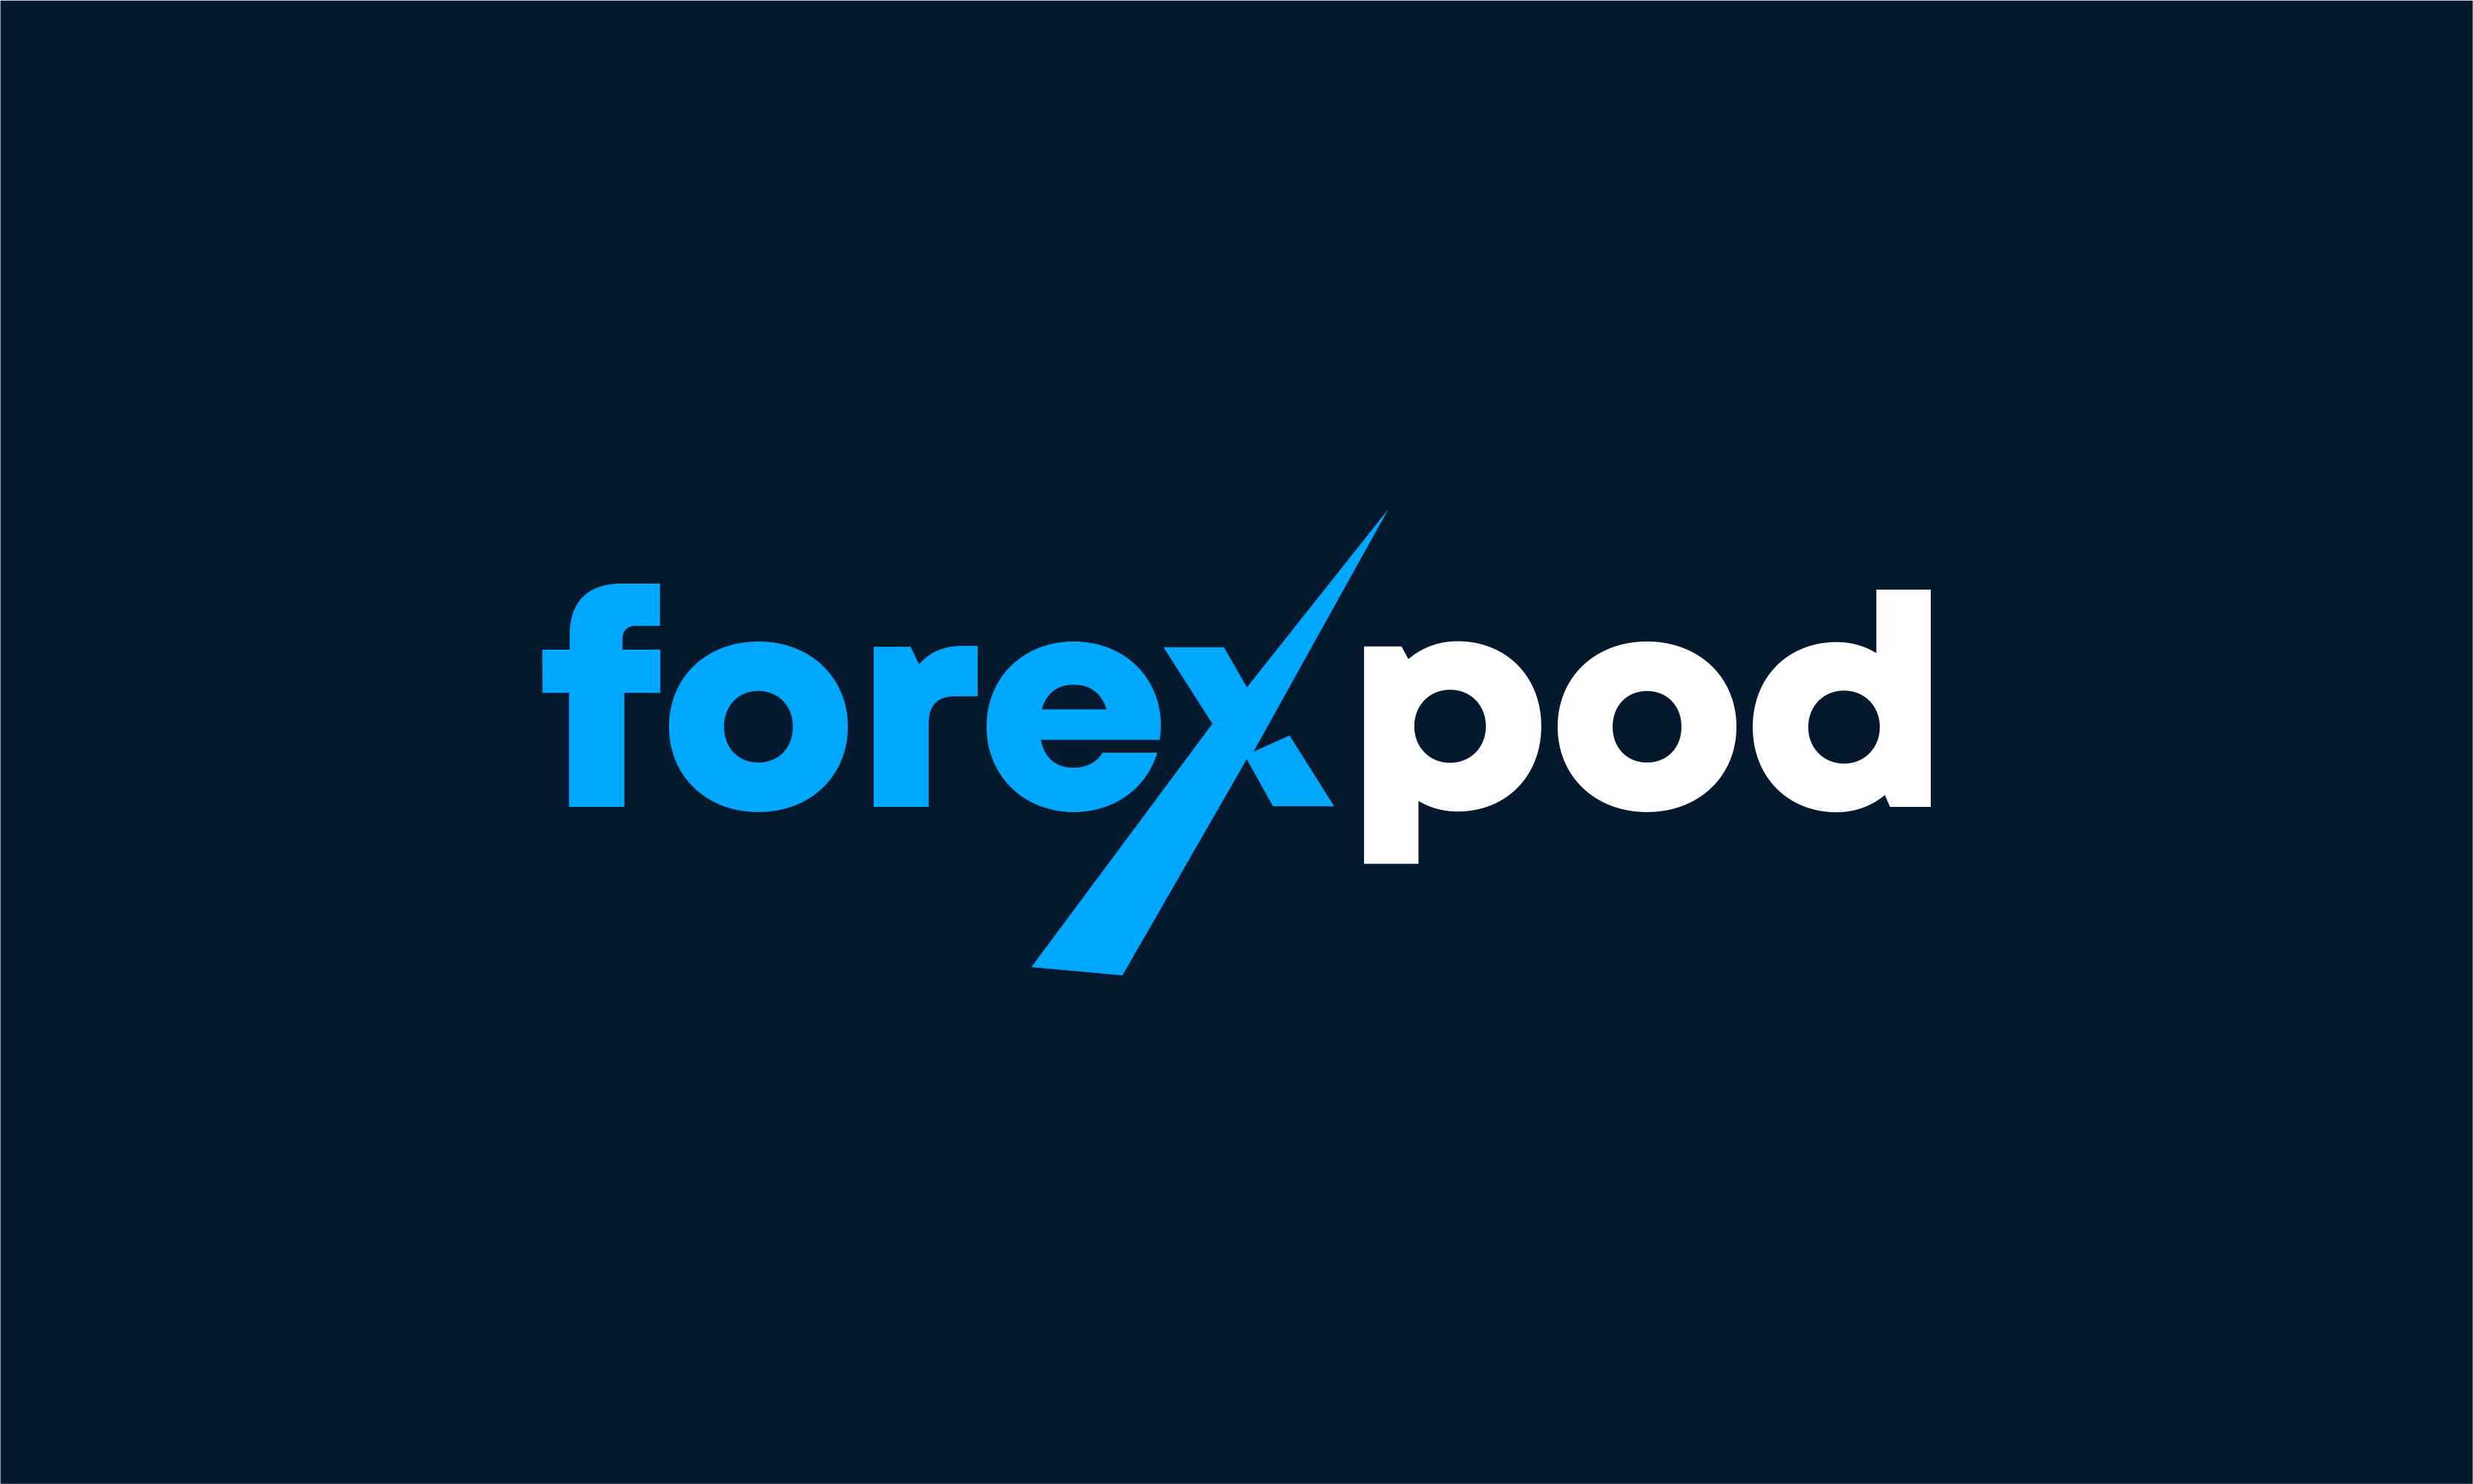 Forexpod - Investment business name for sale